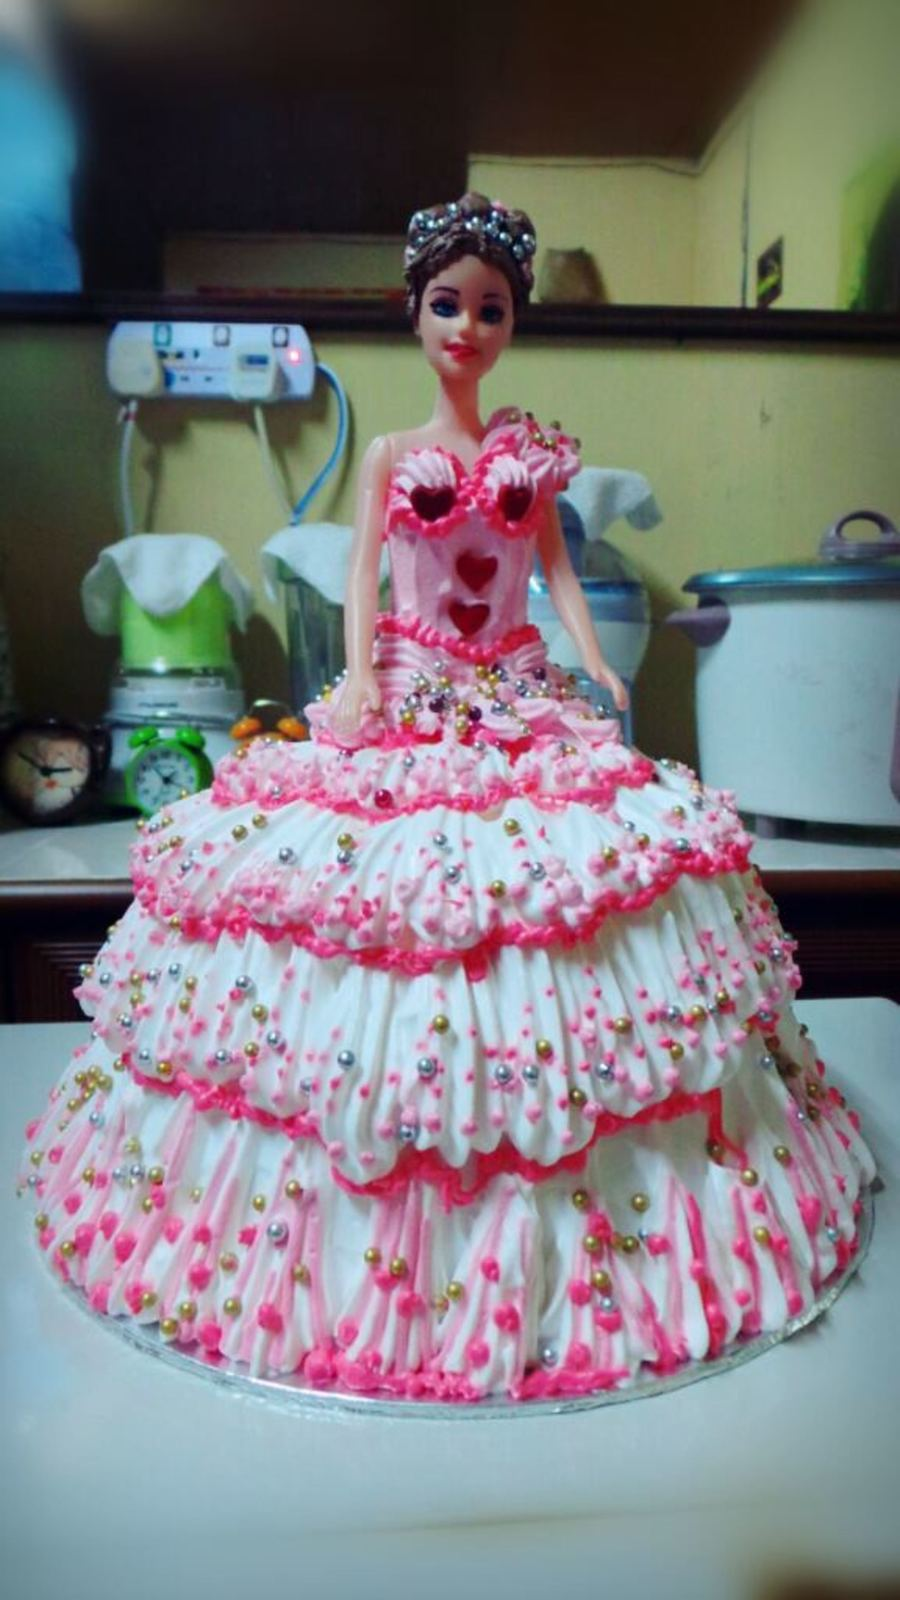 Pinkie Princess on Cake Central